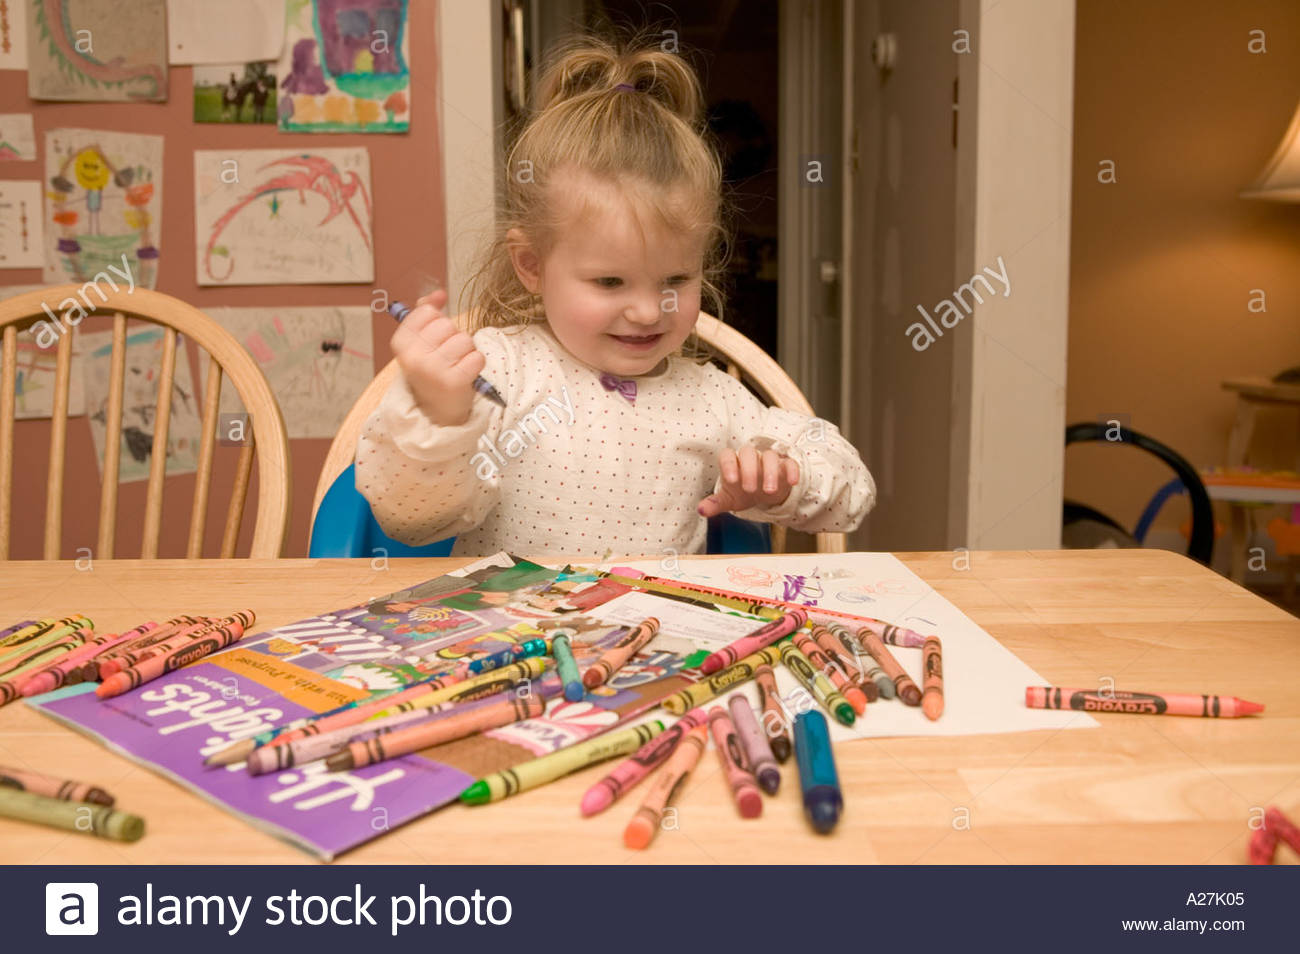 Little Girl 2 Coloring With Crayons At Home Stock Photo  3405572